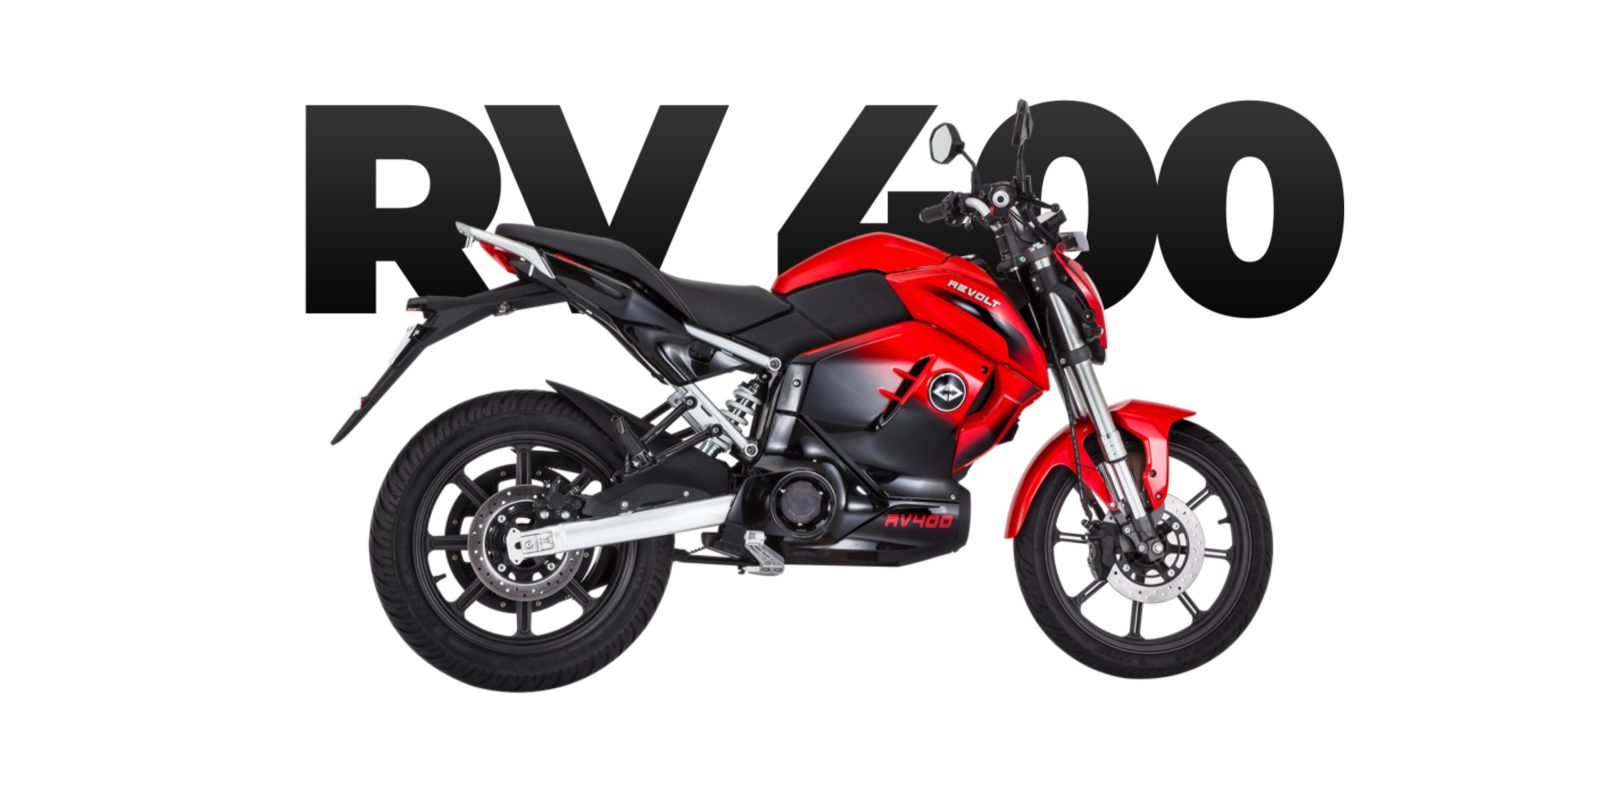 Revolt unveils 125cc class electric motorcycle with nearly 100 mile range